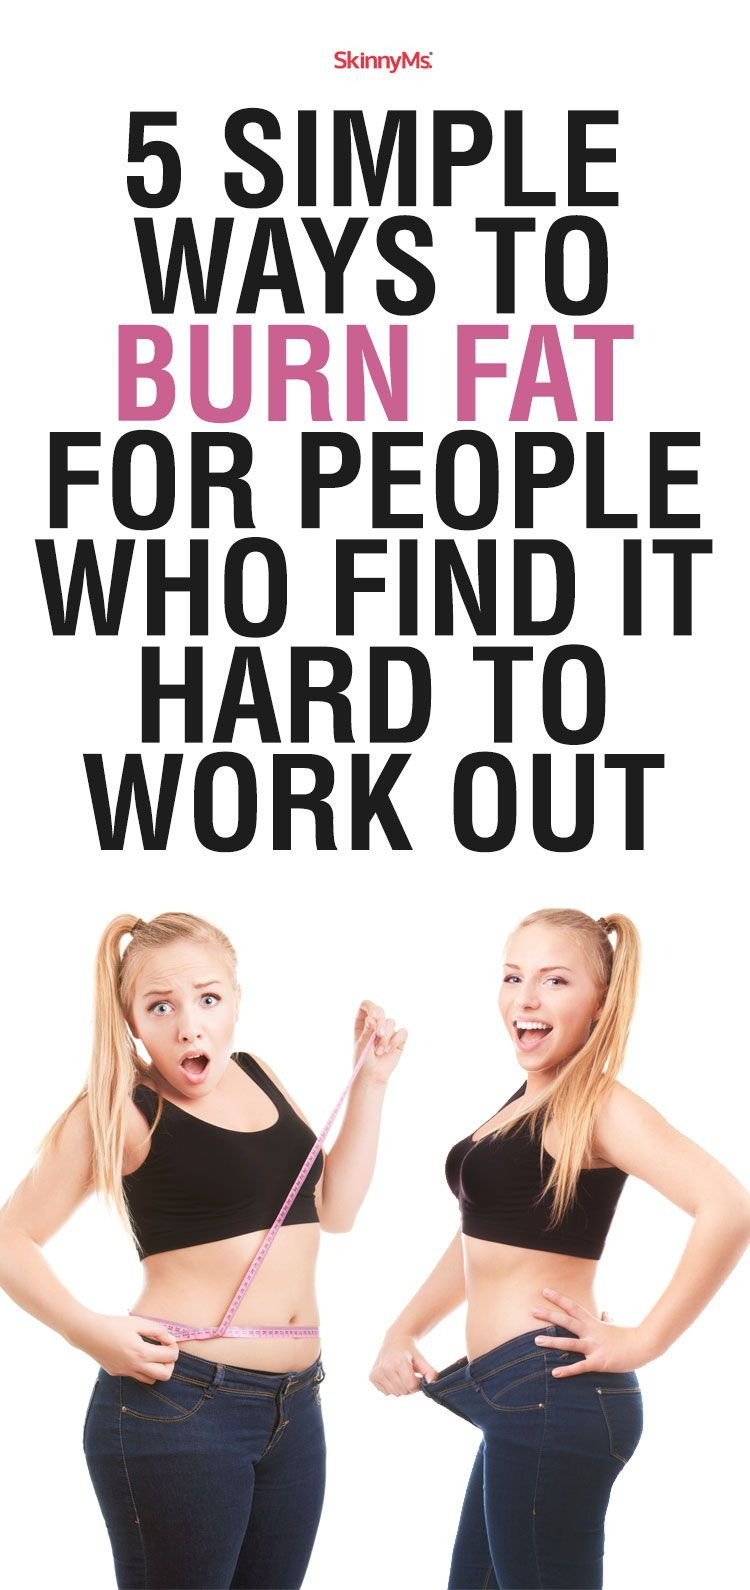 5 Simple Ways to Burn Fat for People Who Find It Hard To Work Out